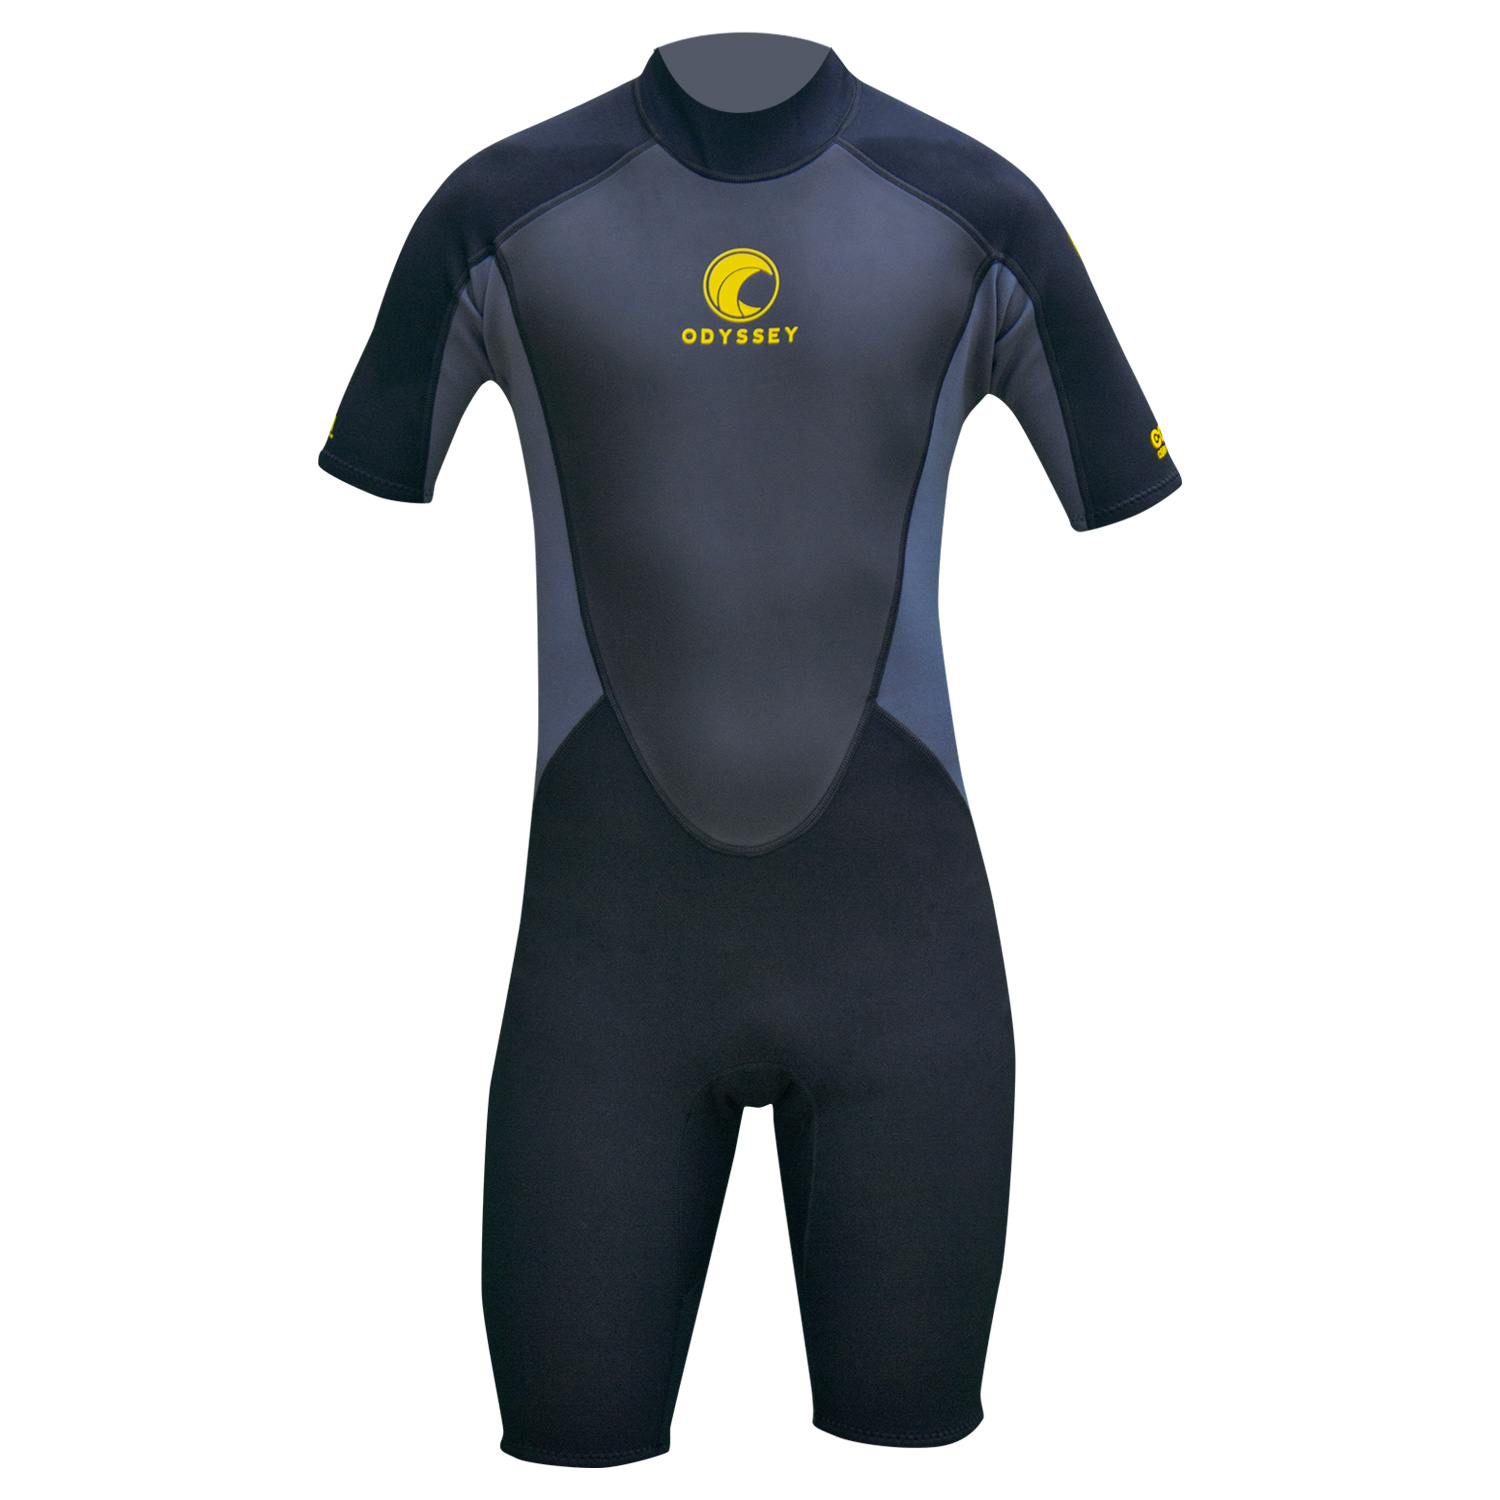 Odyssey-Core-3-2mm-Mens-Shorty-Wetsuit-Surf-Swim-Kayak-Shortie-Wet-Suit-S-XXL thumbnail 25